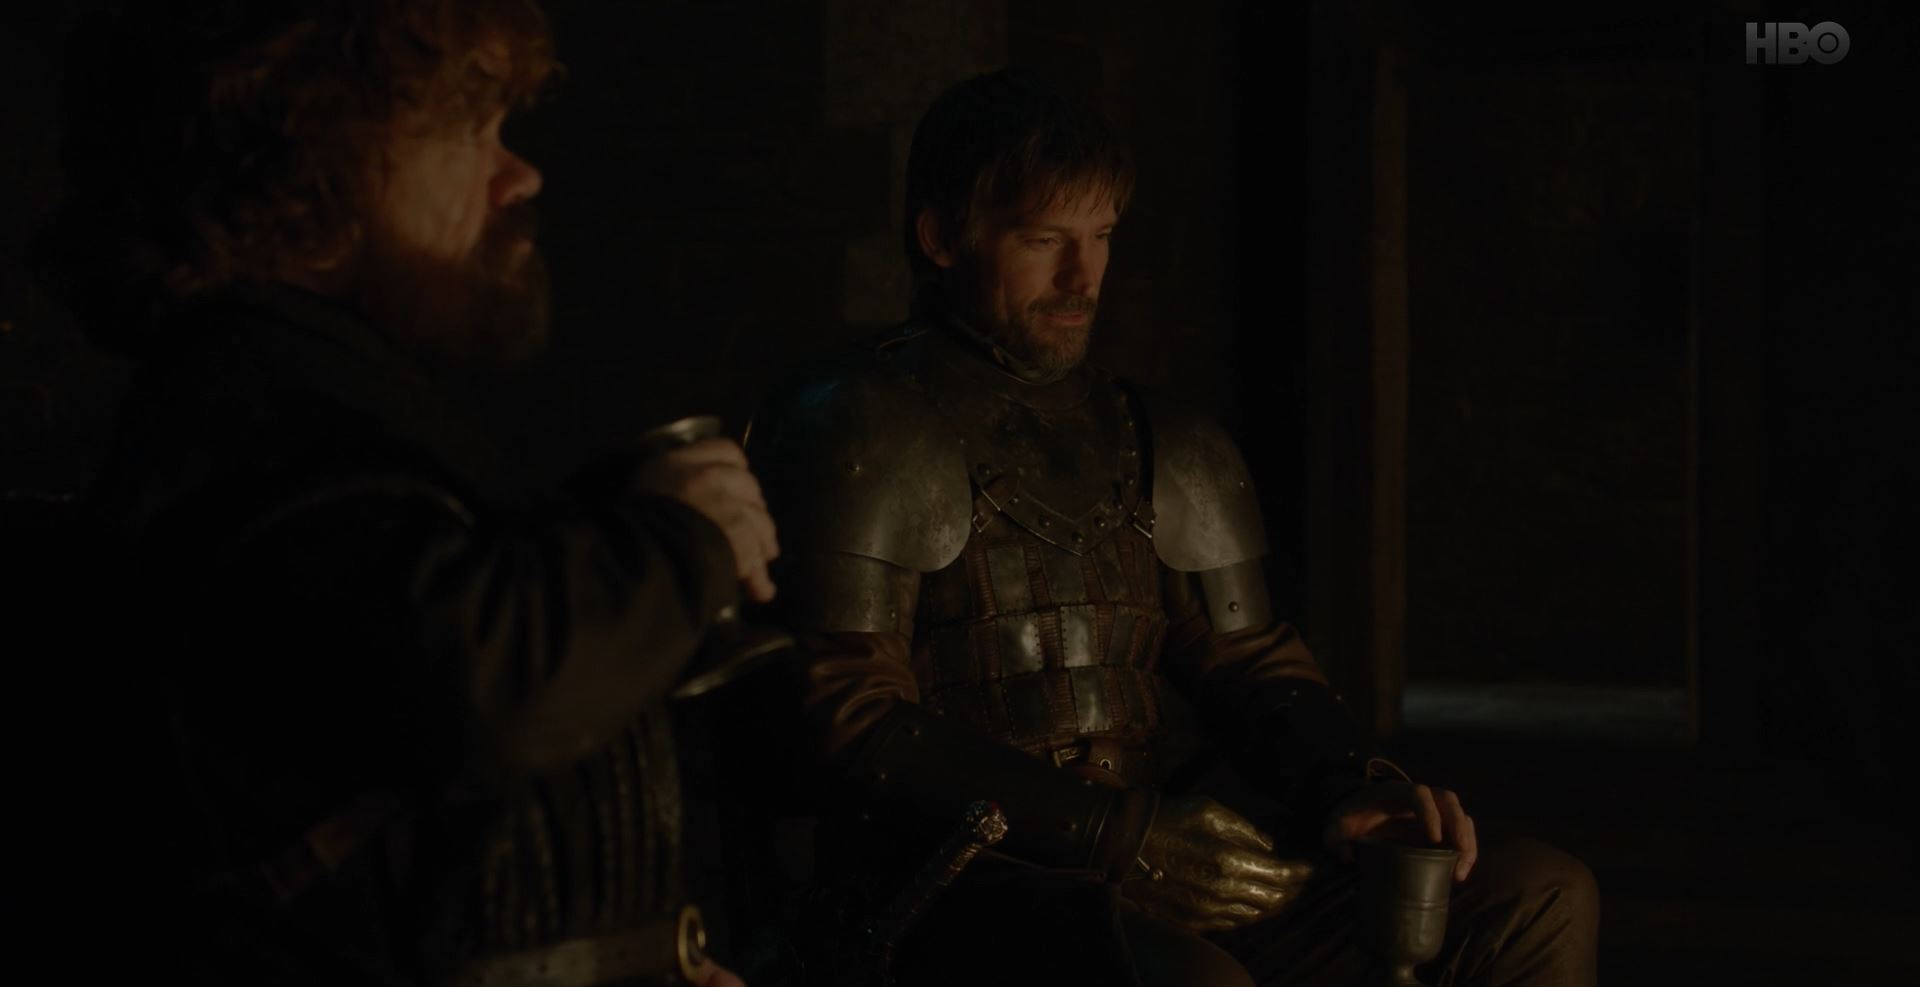 Game of Thrones S08E02 A Knight of the Seven Kingdoms Review - Ser Jaime and Tyrion